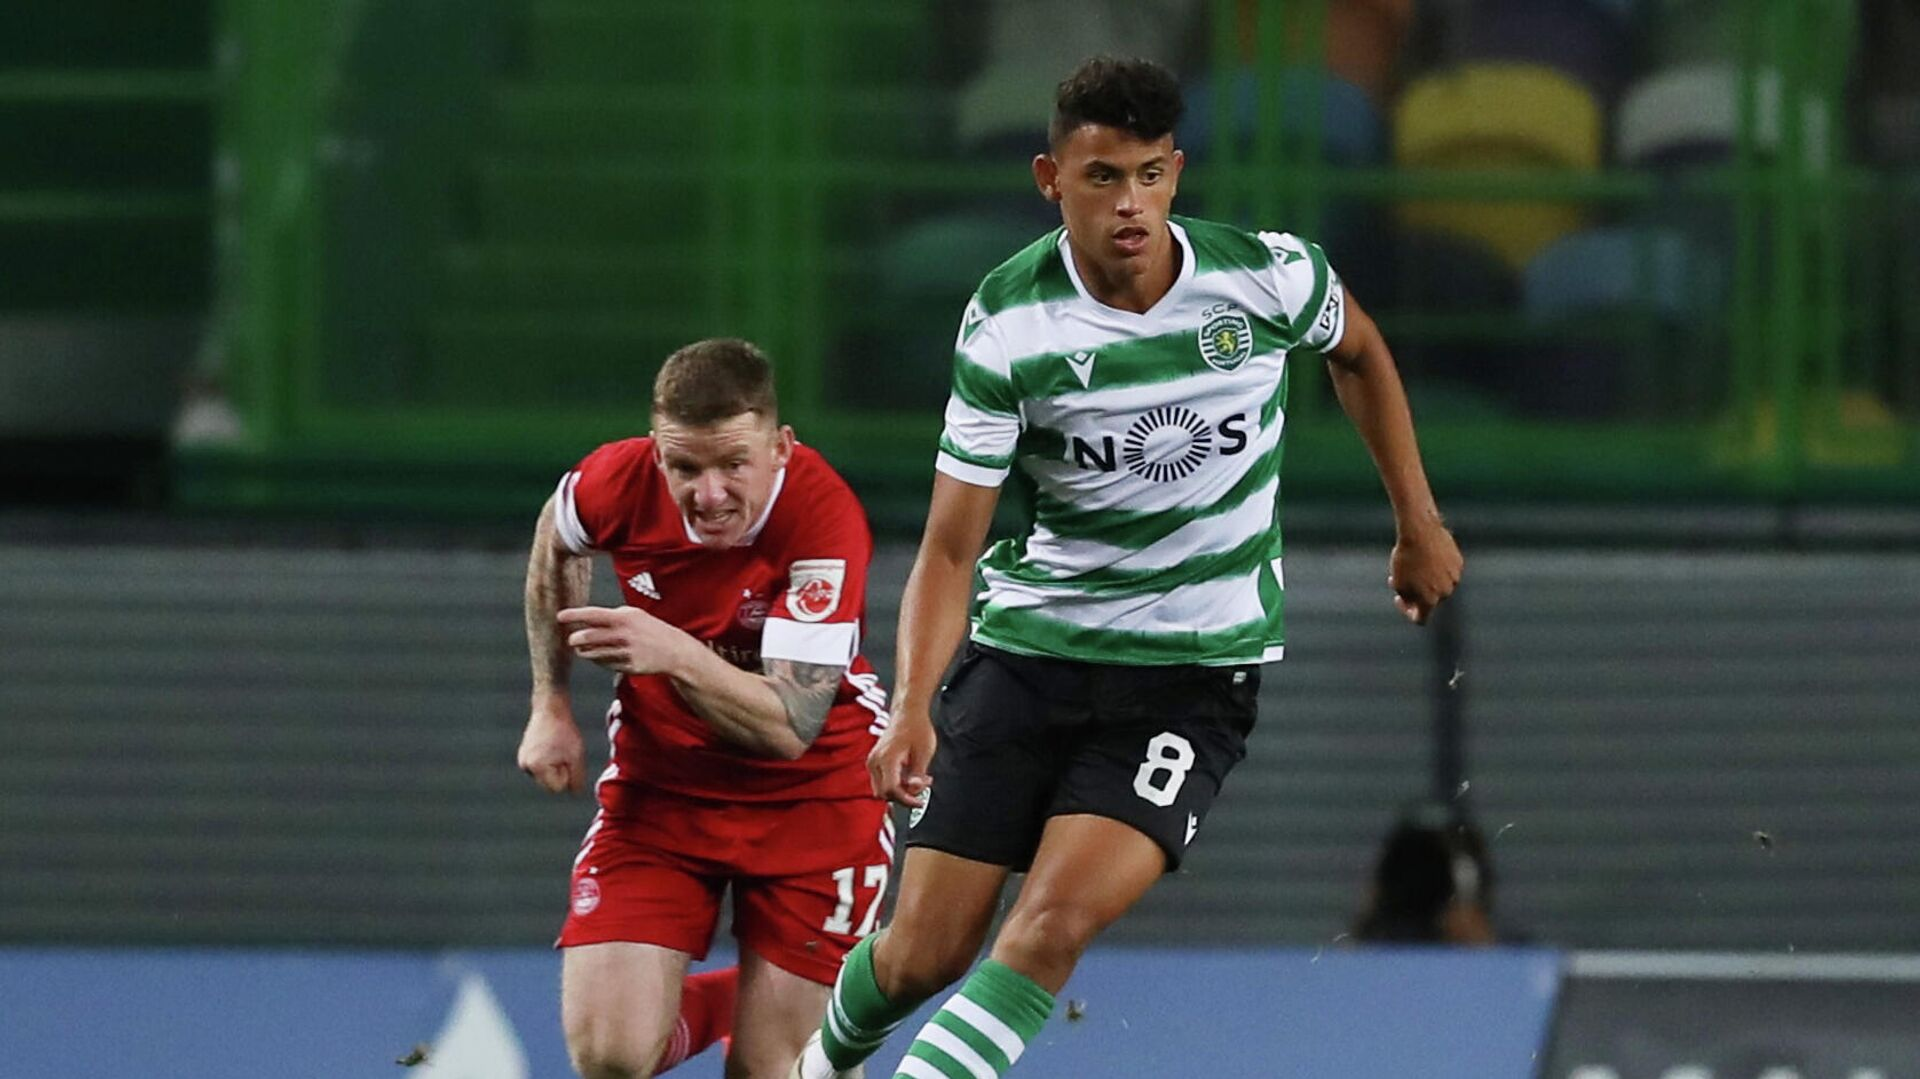 Soccer Football - Europa League - Third qualifying round - Sporting CP v Aberdeen - Estadio Jose Alvalade, Lisbon, Portugal - September 24, 2020  Sporting CP's Matheus Nunes in action with Aberdeen's Jonny Hayes REUTERS/Pedro Nunes - РИА Новости, 1920, 25.09.2020